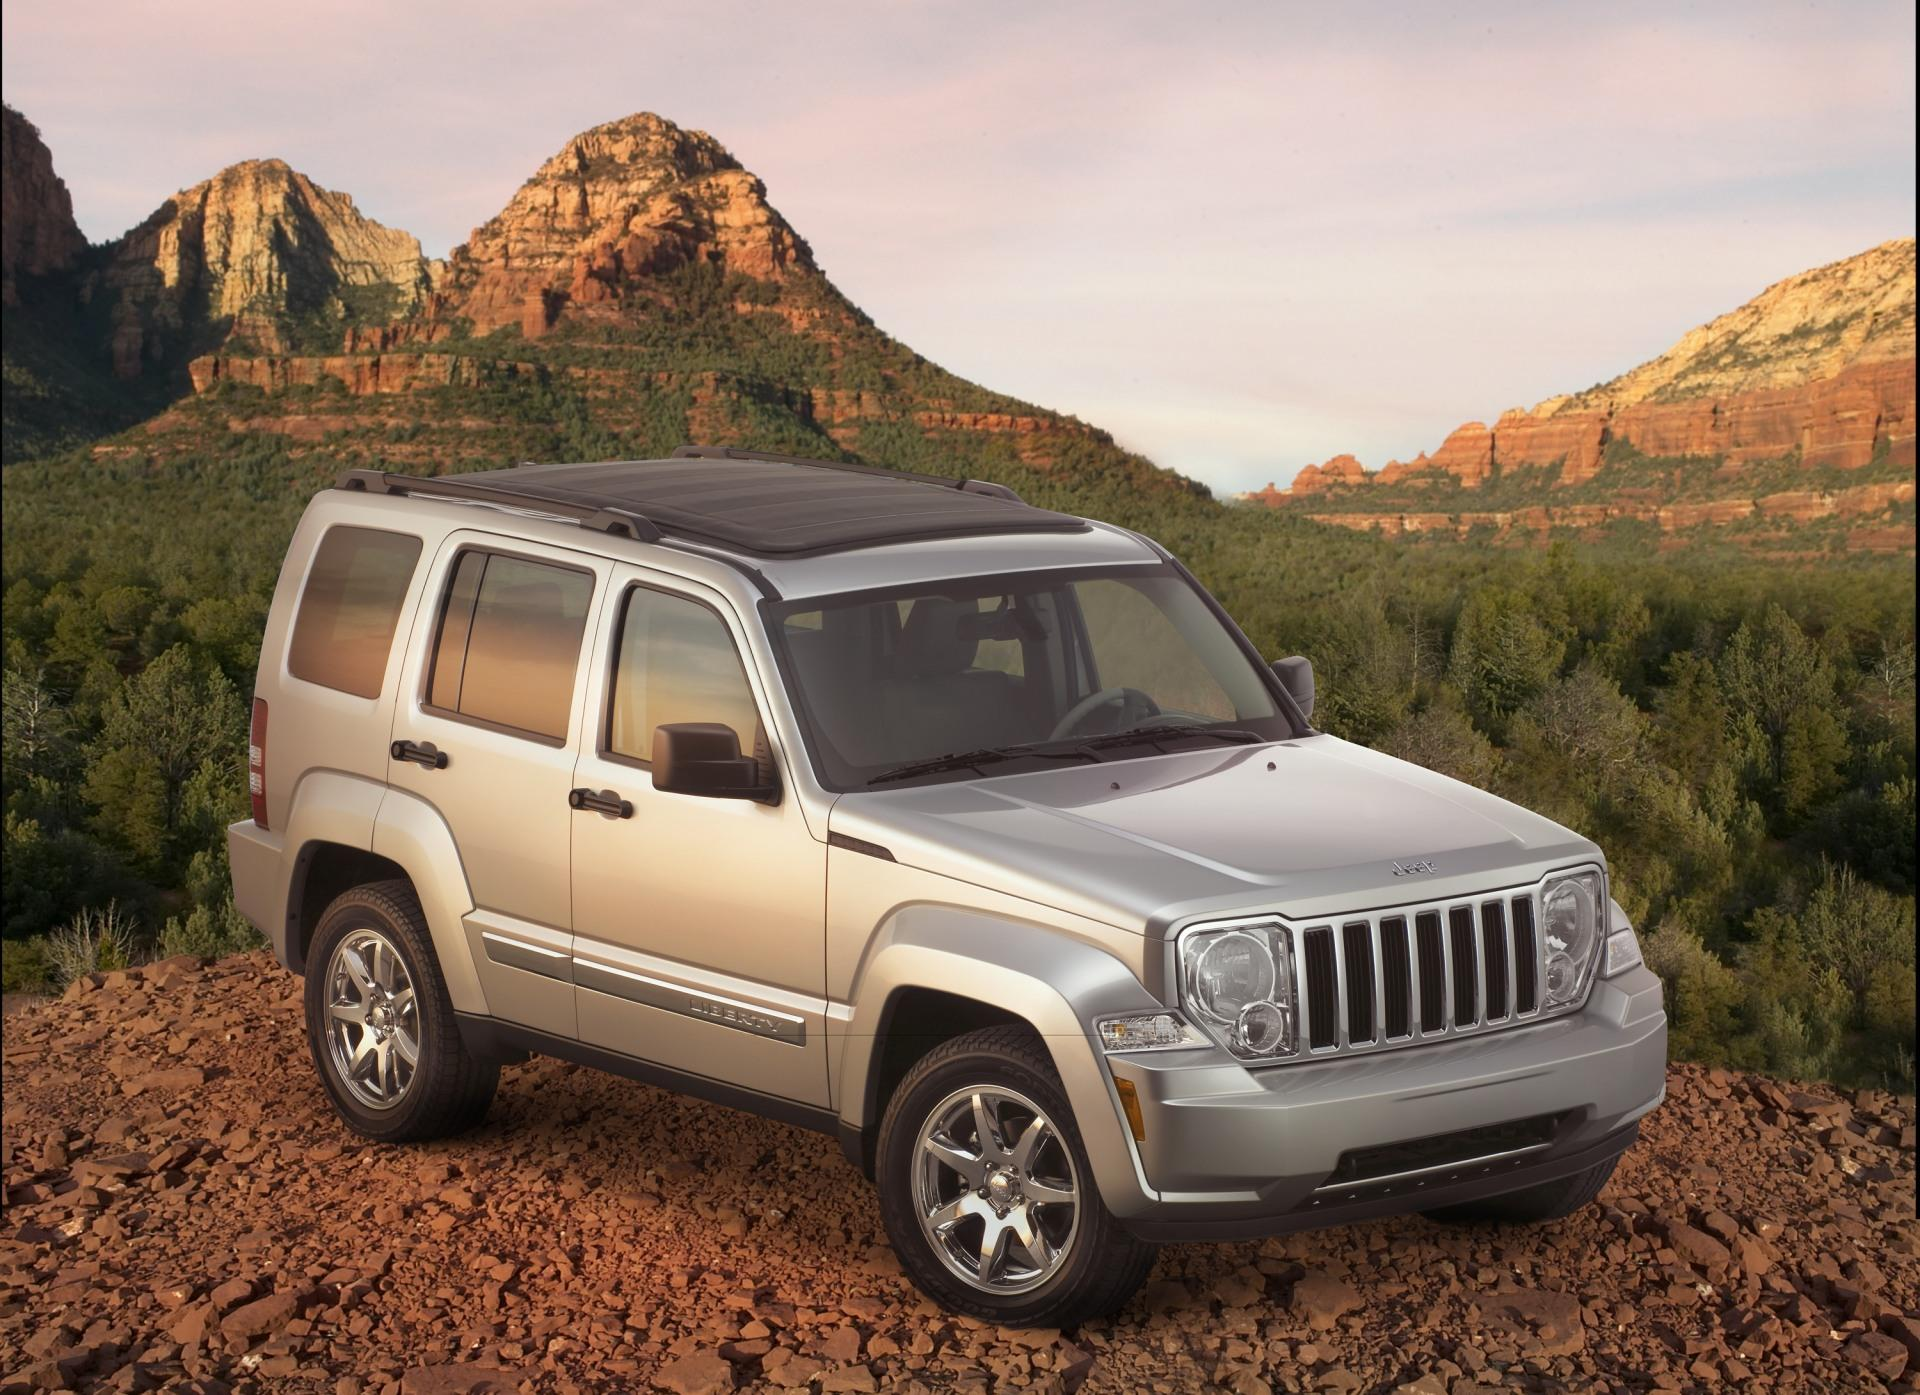 2009 jeep liberty - conceptcarz